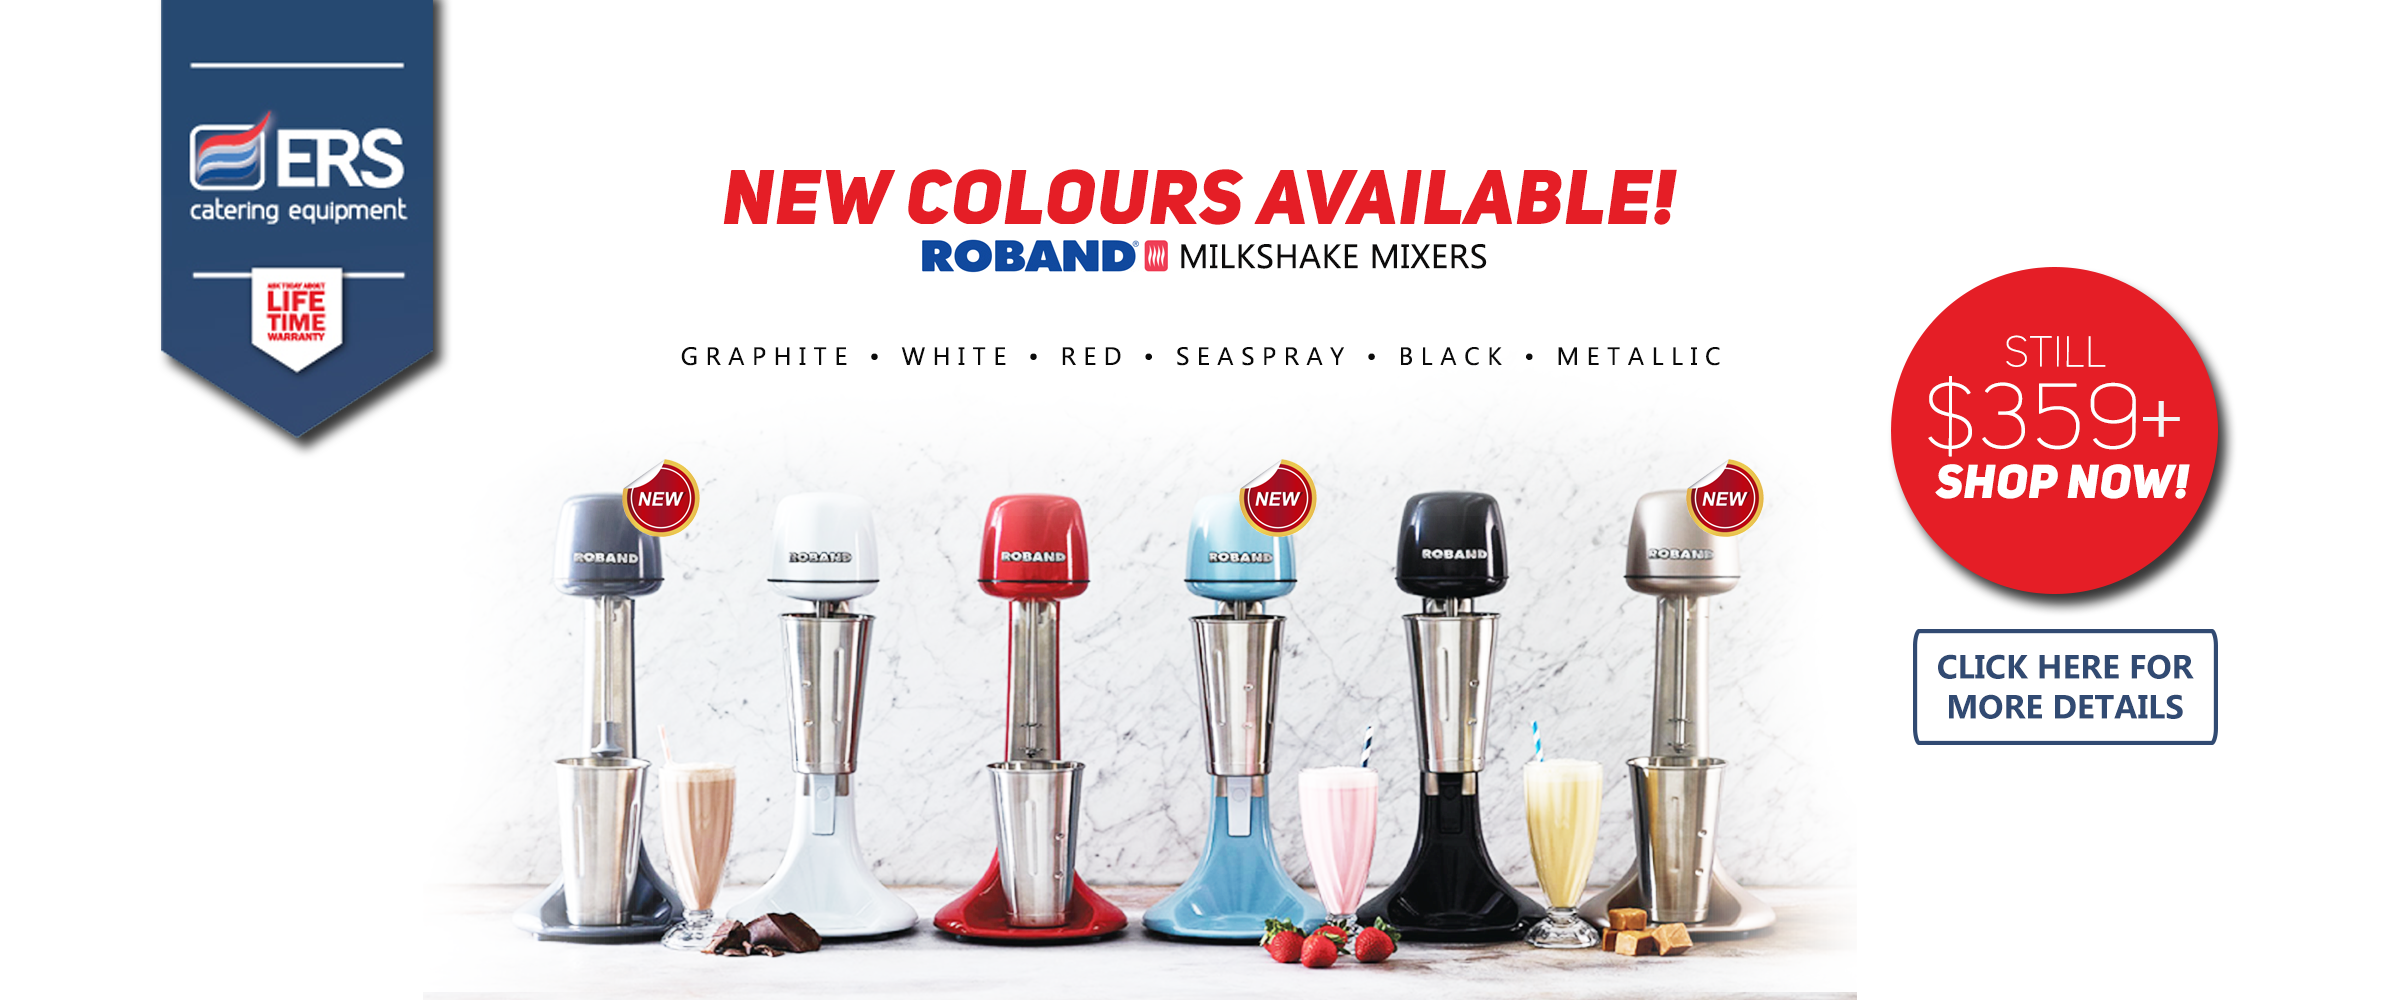 Roband Milkshake Mixers New Color Offer